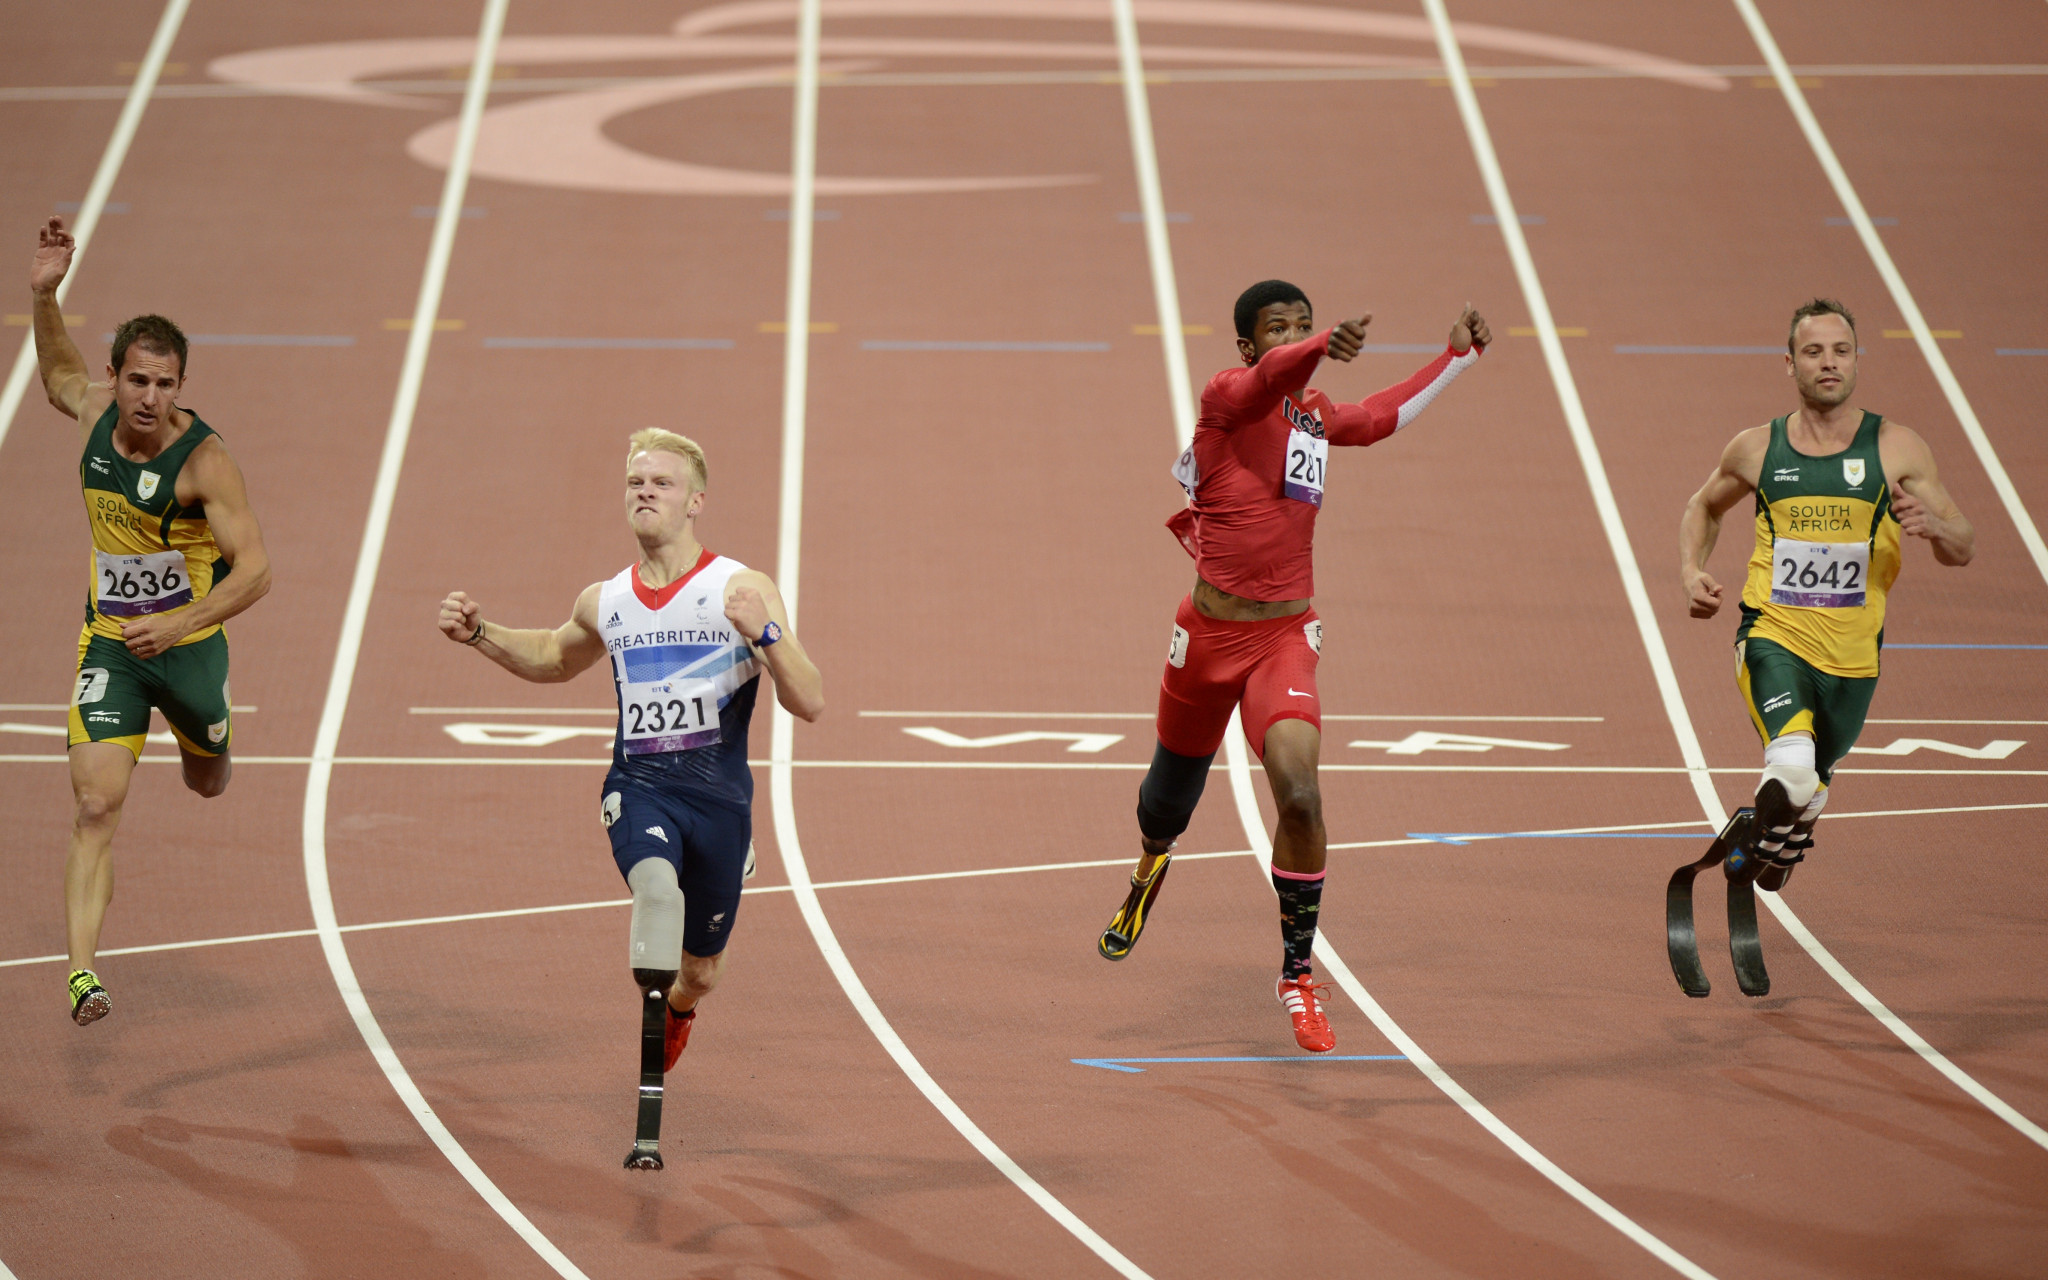 IPC and UN team up for campaign marking positive legacies of London 2012 Paralympic Games